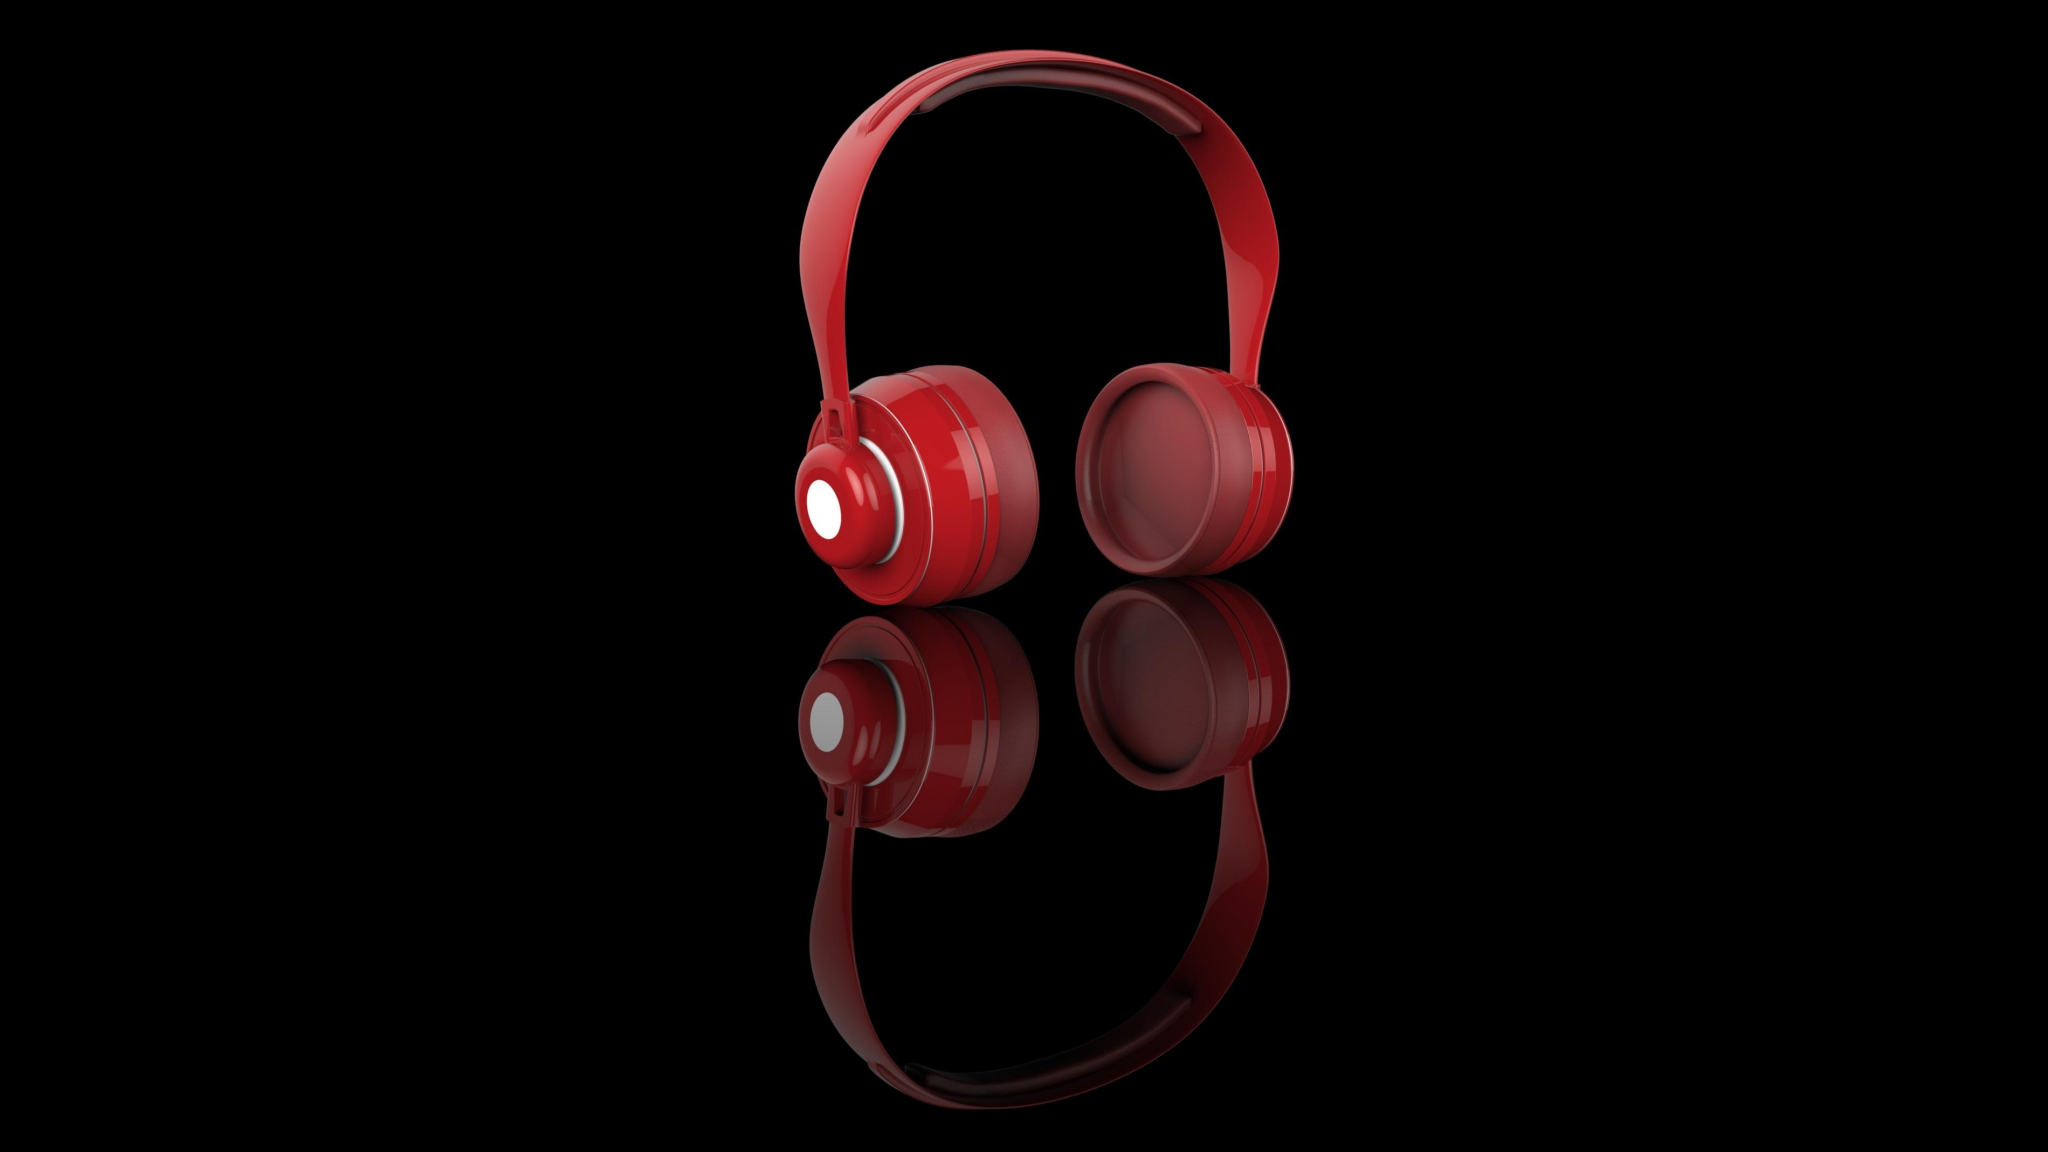 Download 2048x1152 Wallpaper Red Headphone Music